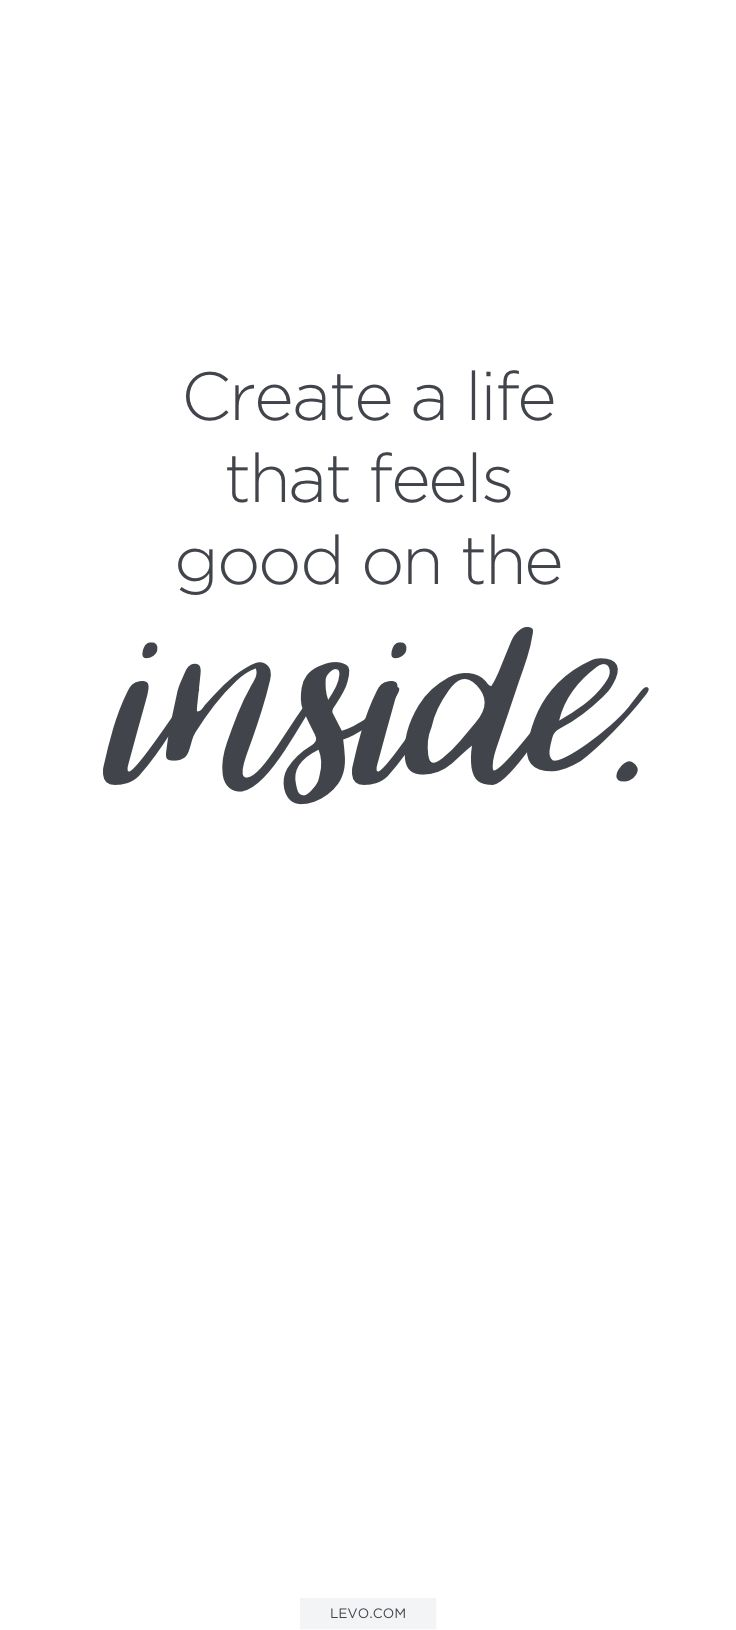 Self Image Quotes Best 25 Self Quotes Ideas On Pinterest  Quotes About Making